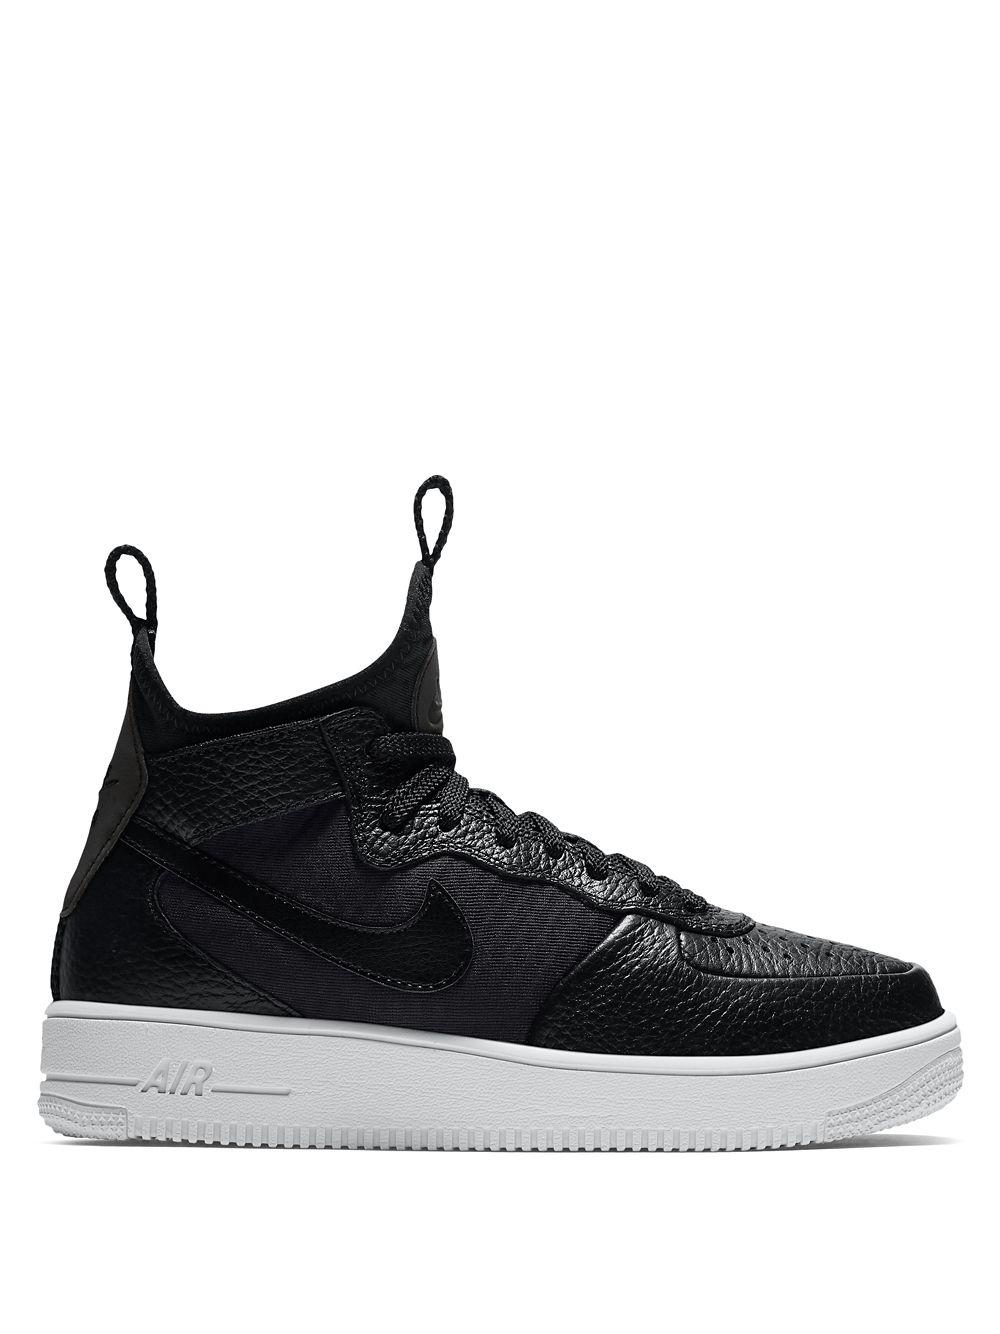 27363f443 Lyst - Nike Air Force 1 Ultraforce Mid-top Shoes in Black for Men